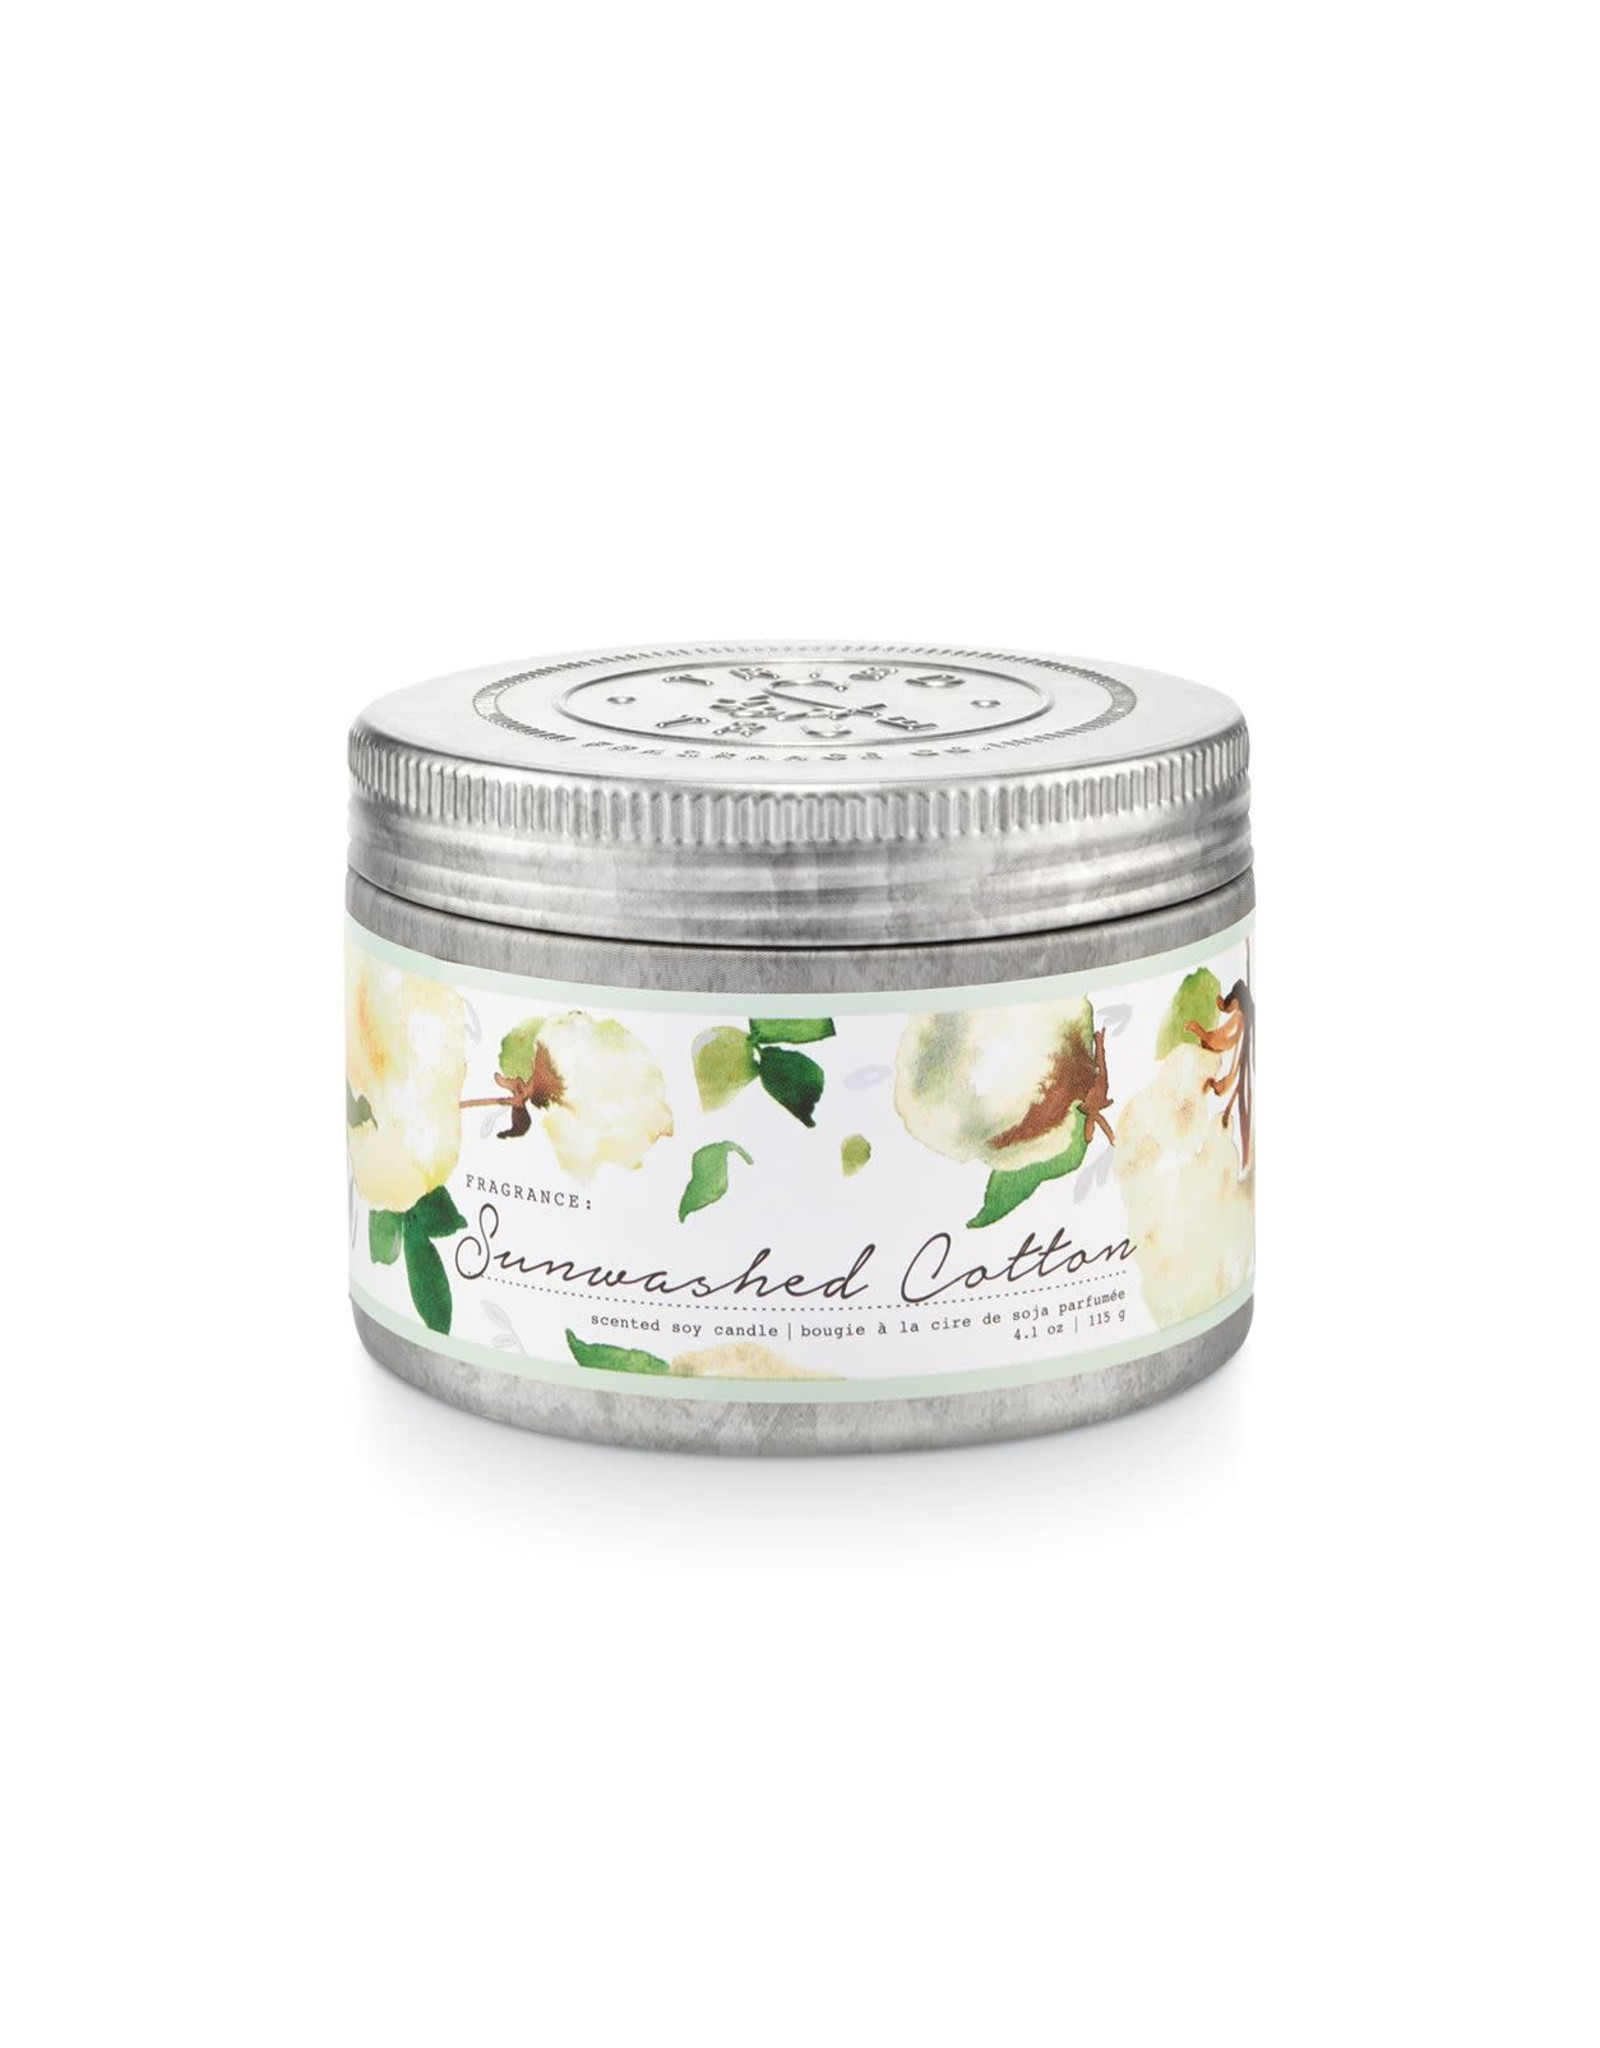 Tried & True 4.1 oz Tin Candle - Sunwashed Cotton